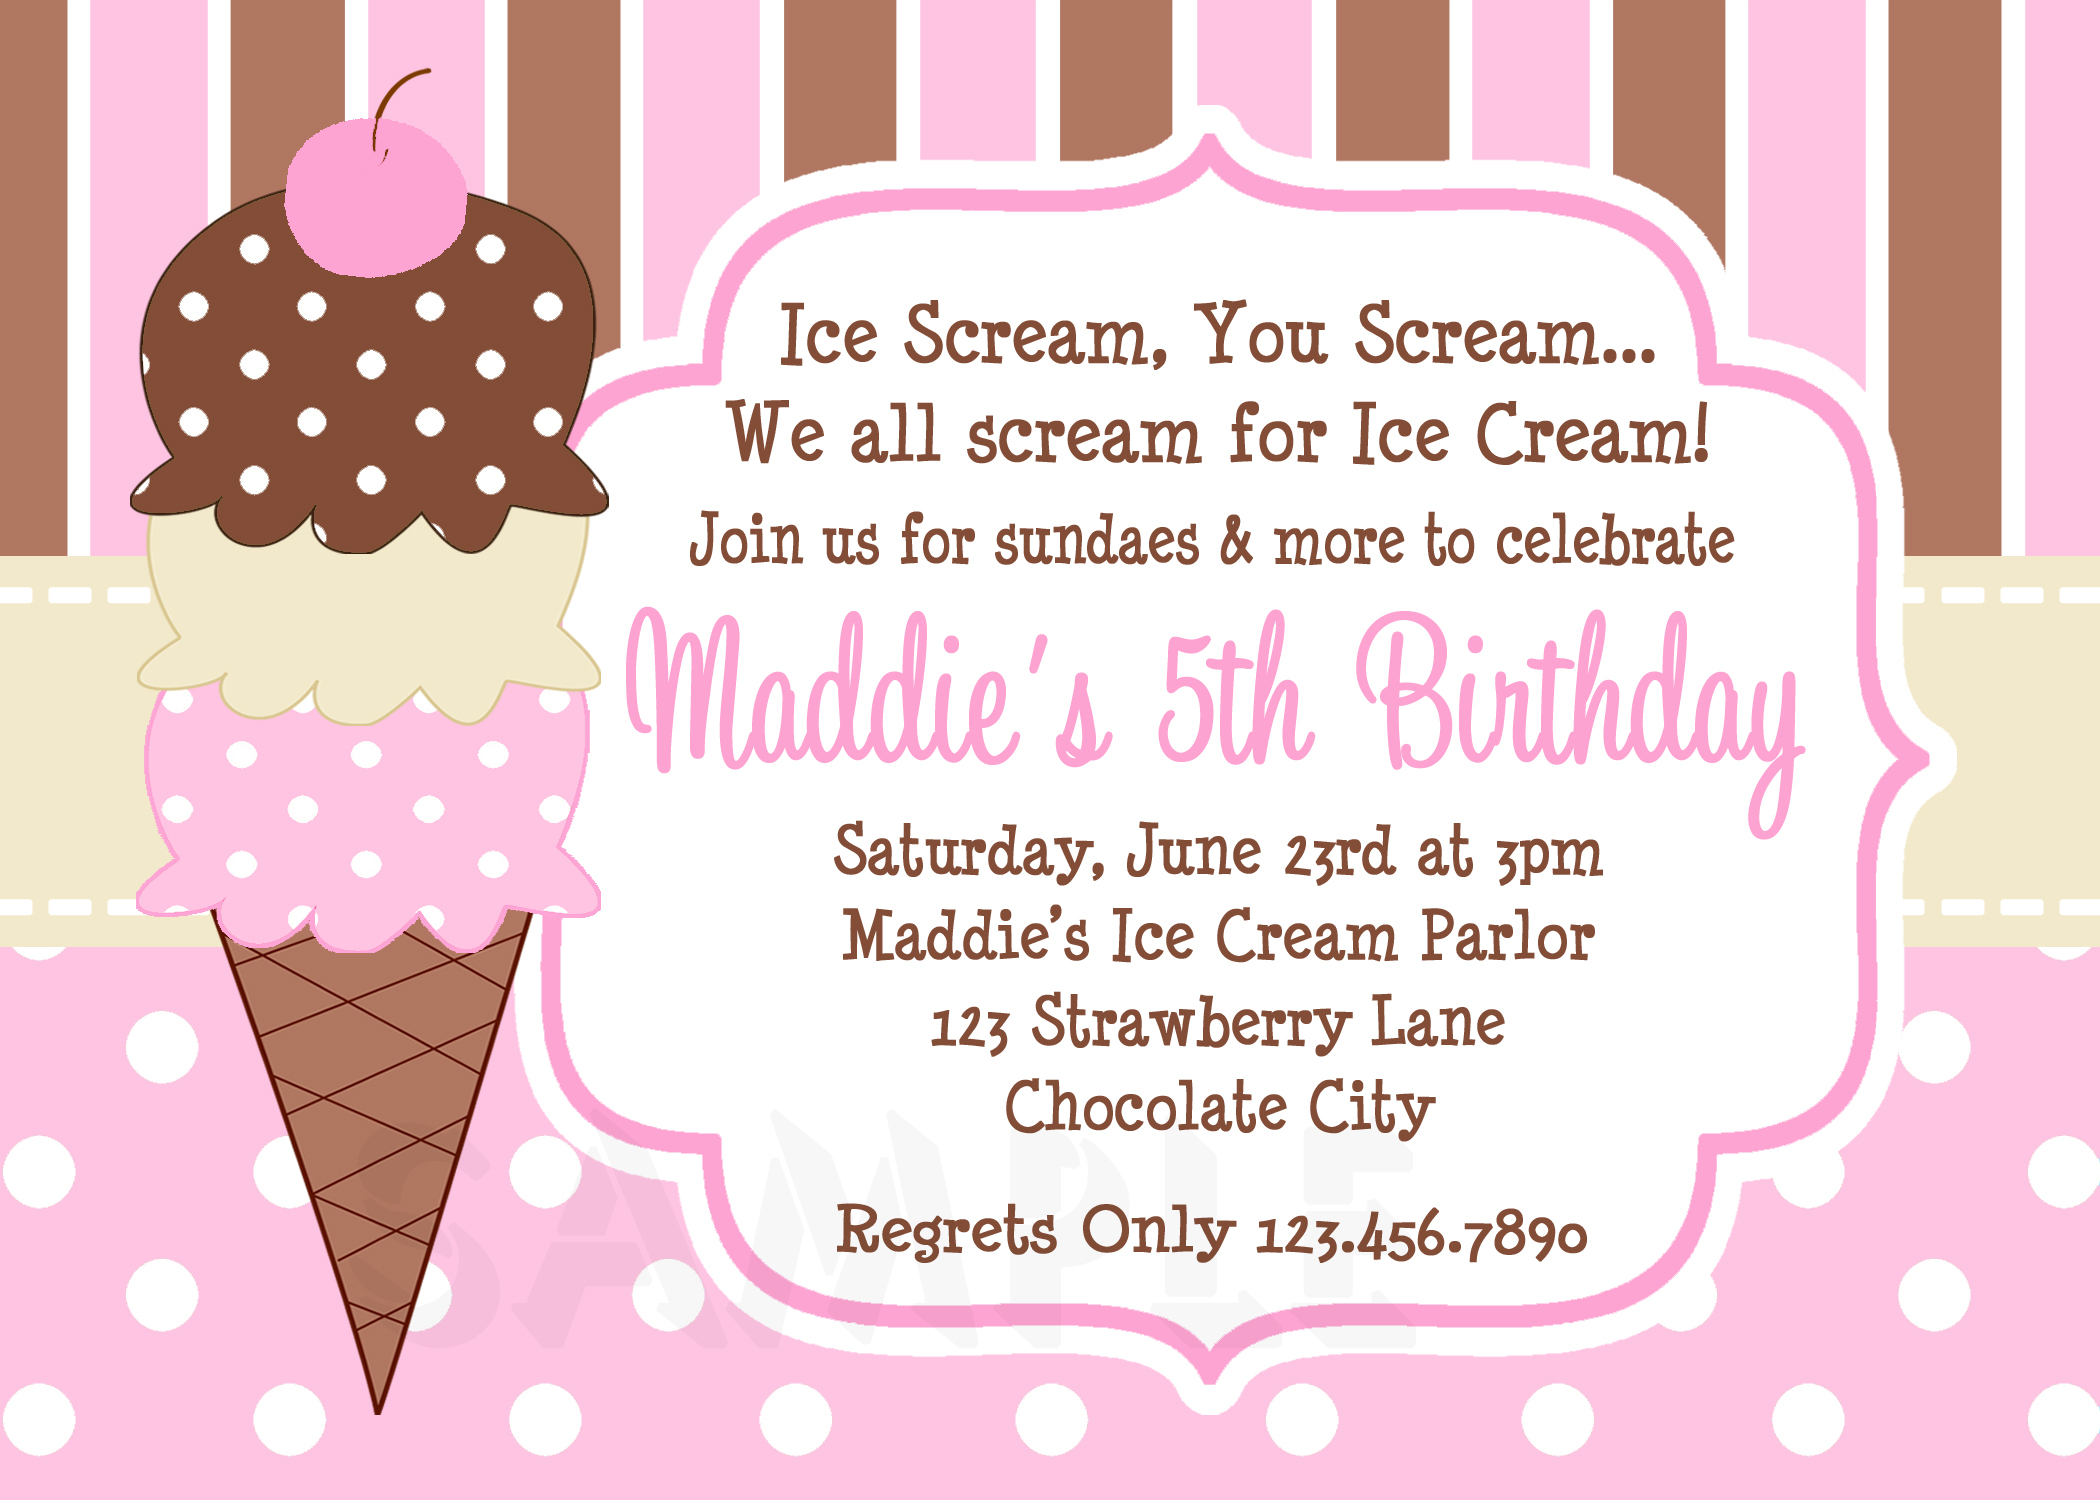 Ice Cream Birthday Party Invitations Pink Brown